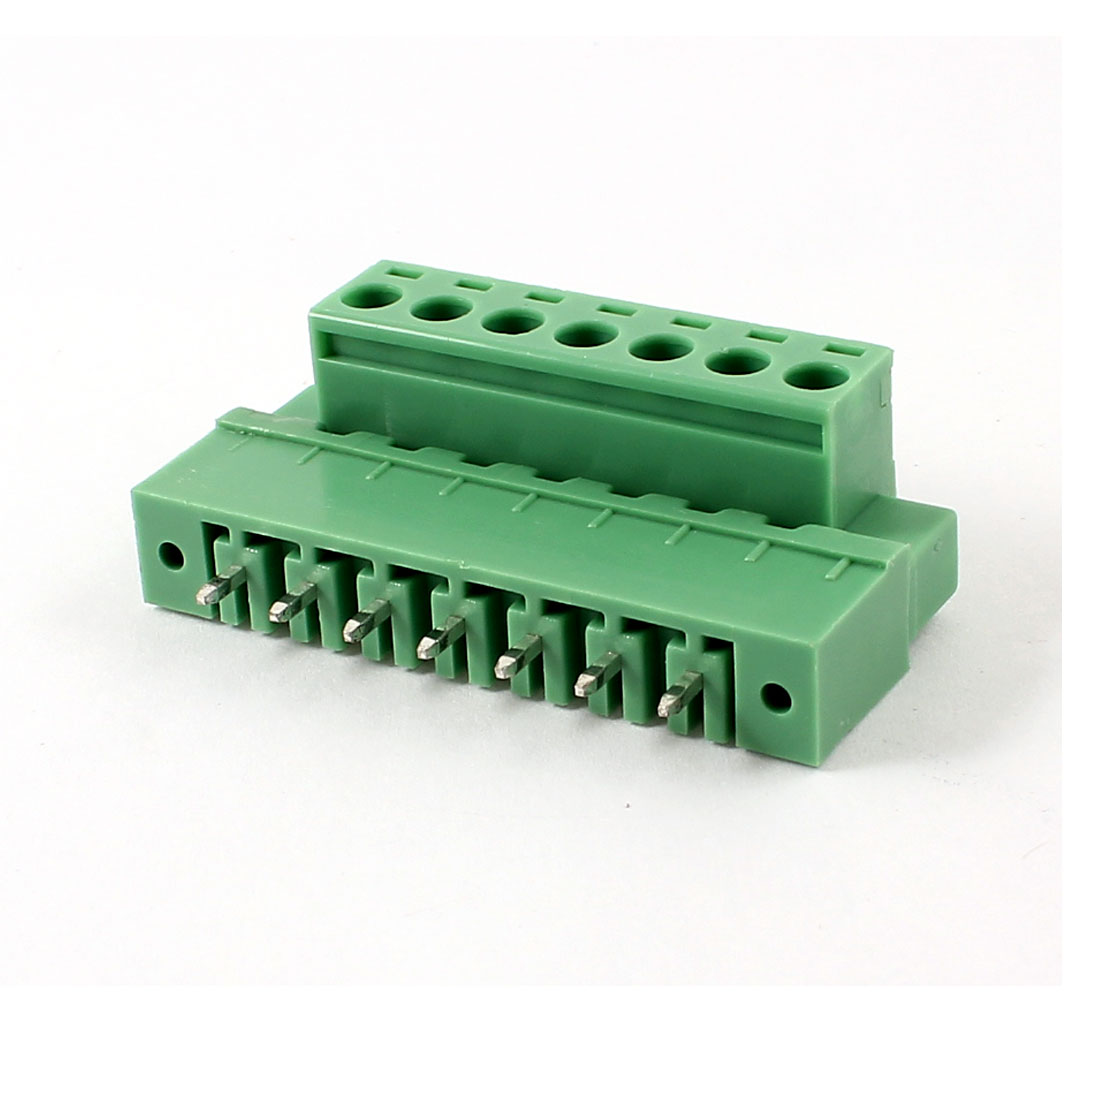 Pair 300V 10A 5.08mm Pitch 7 Pin PCB Screw Terminal Block Connector Green